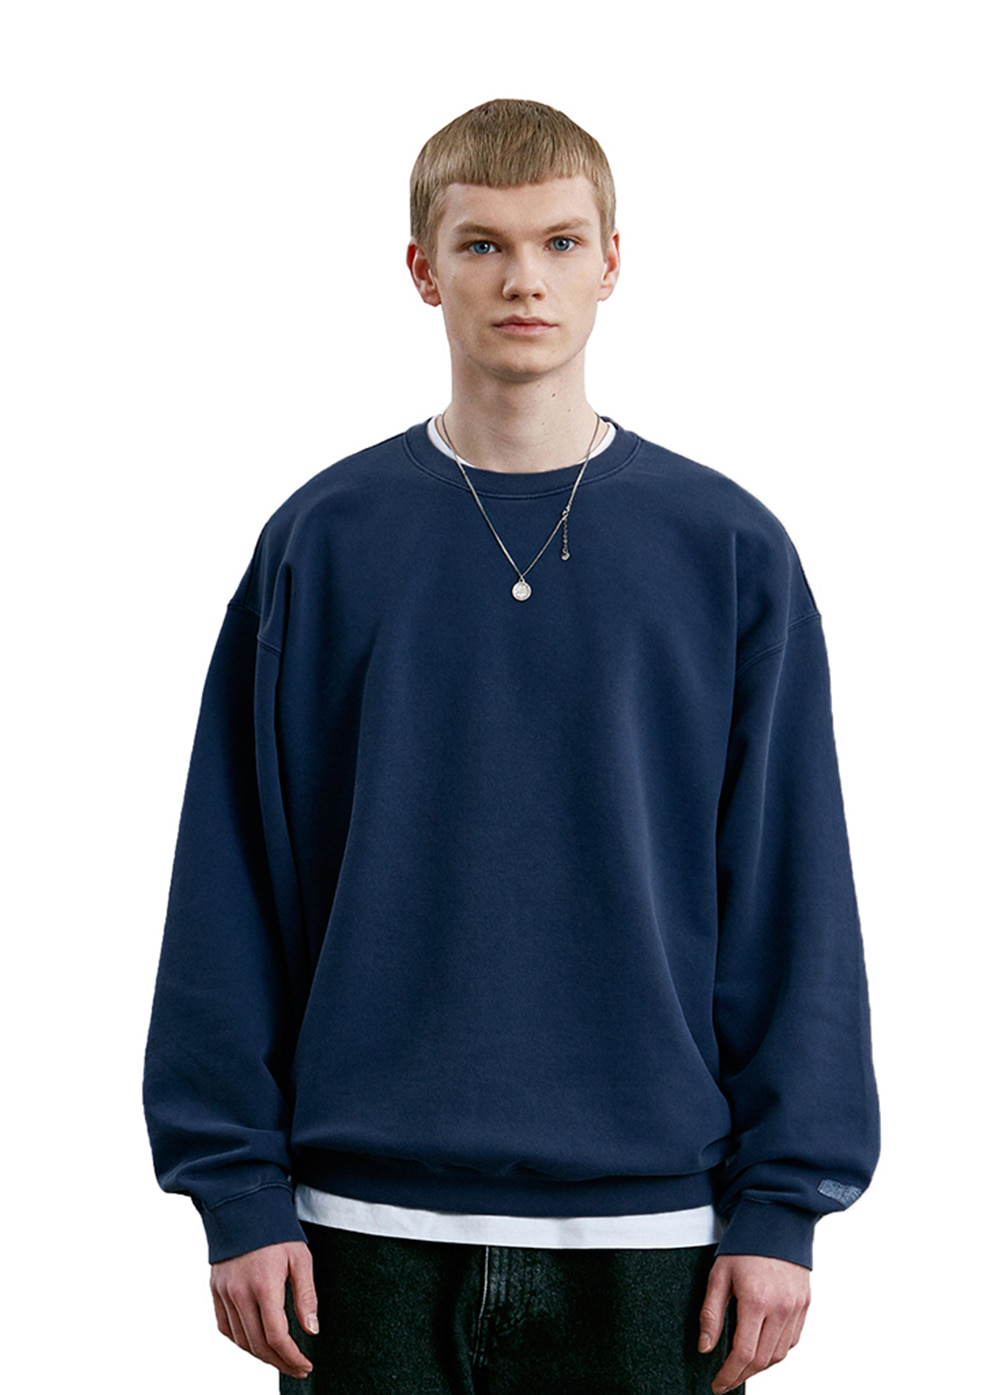 LABEL P-DYED SWEATSHIRT navy